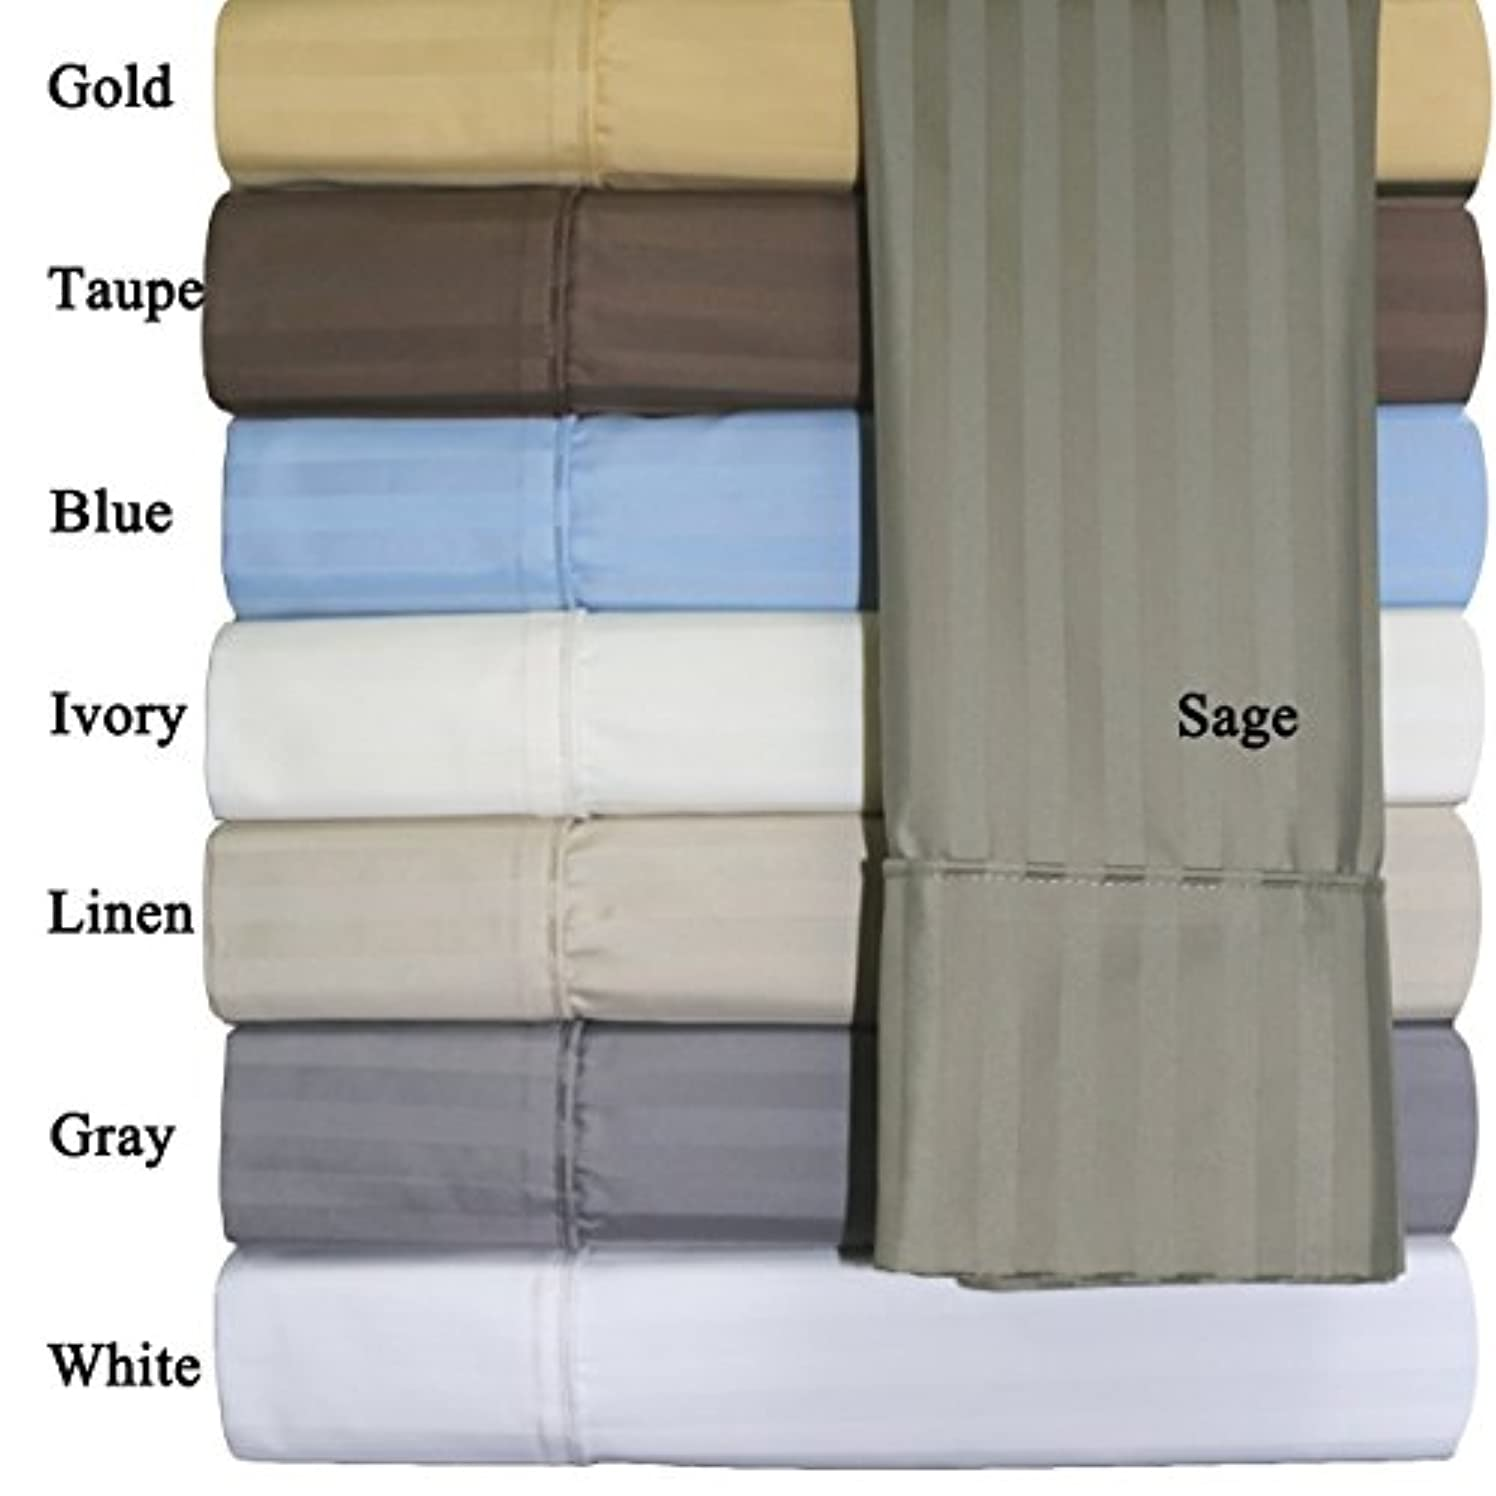 King (Beige Striped) Cotton-Poly-Blend Wrinkle-Free Sheets 650-Thread-Count Sheet Set